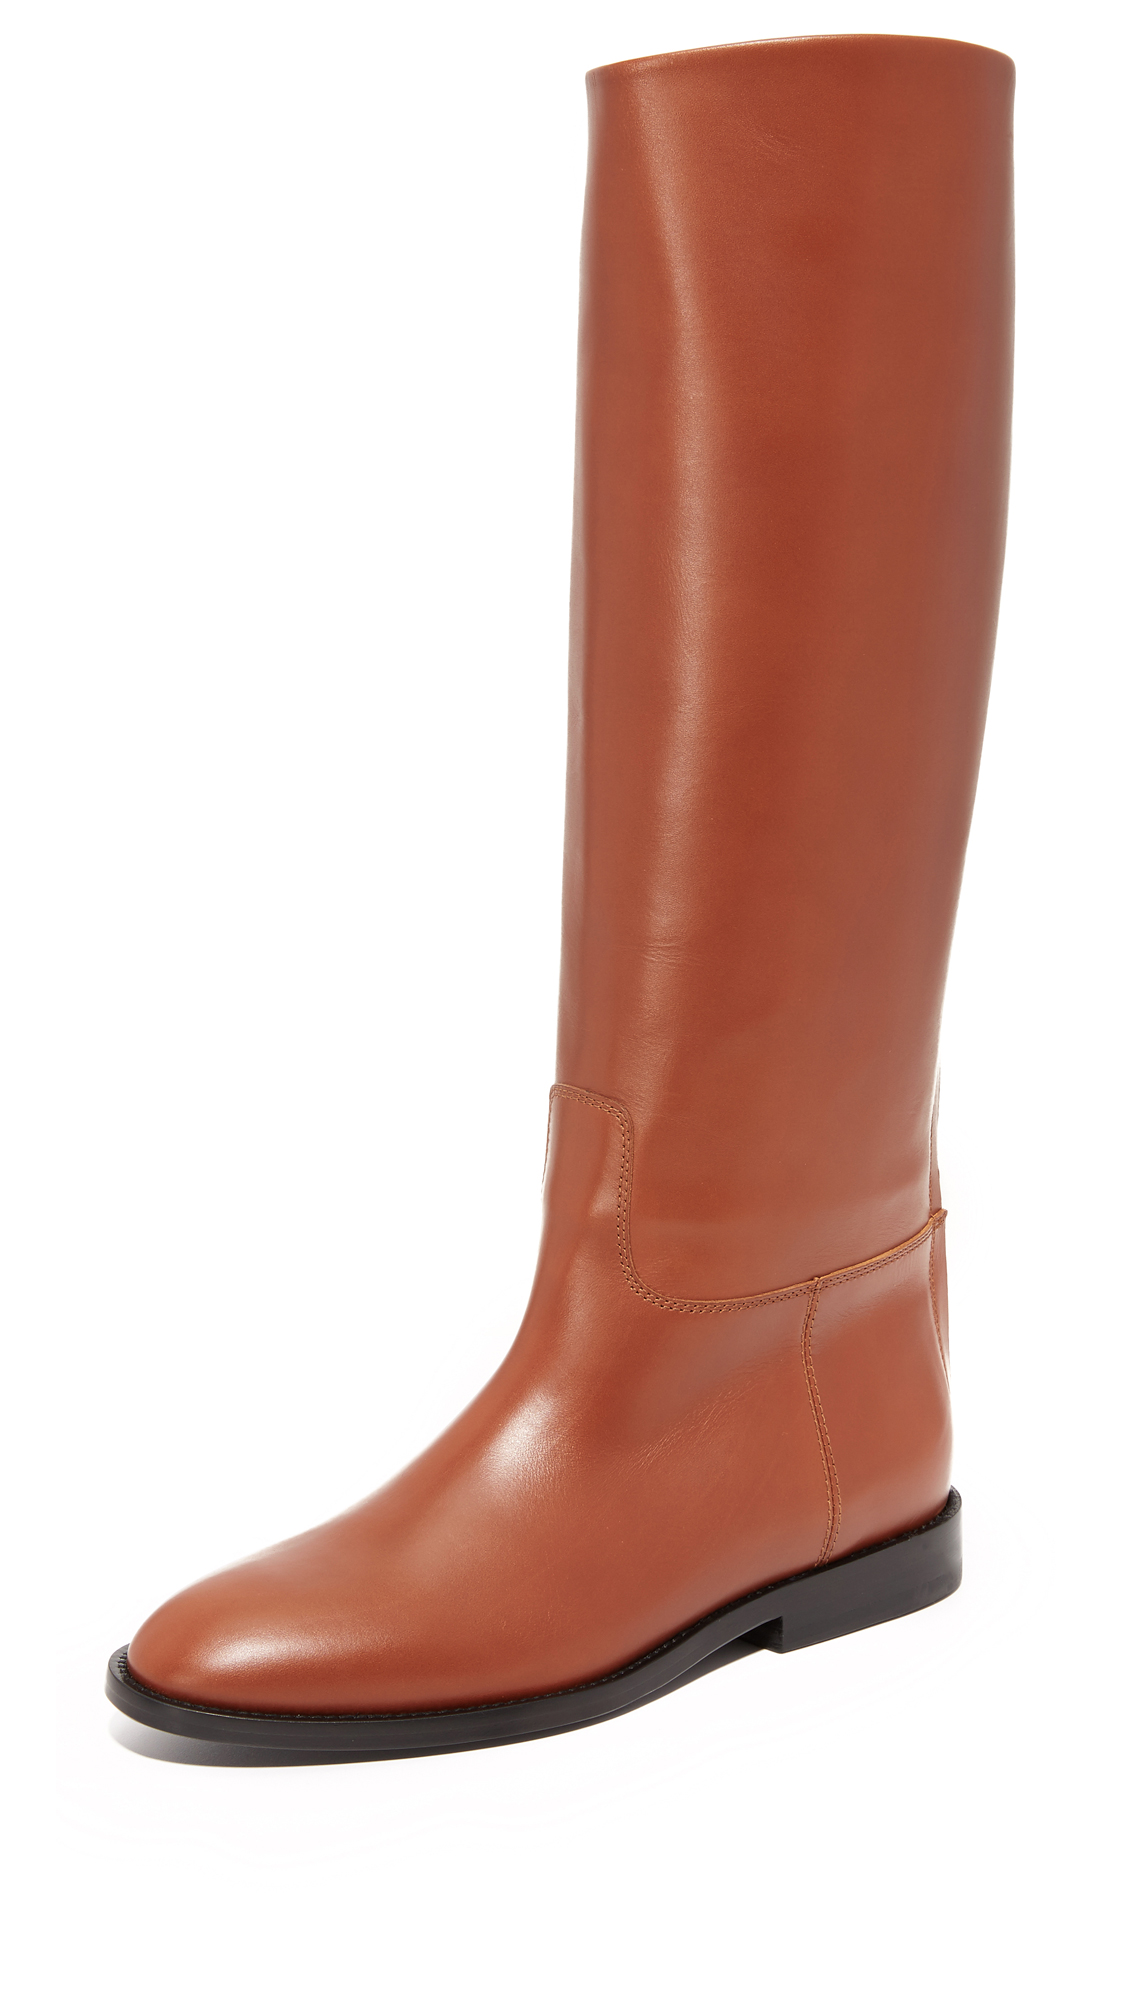 Jenni Kayne Riding Boots - Saddle